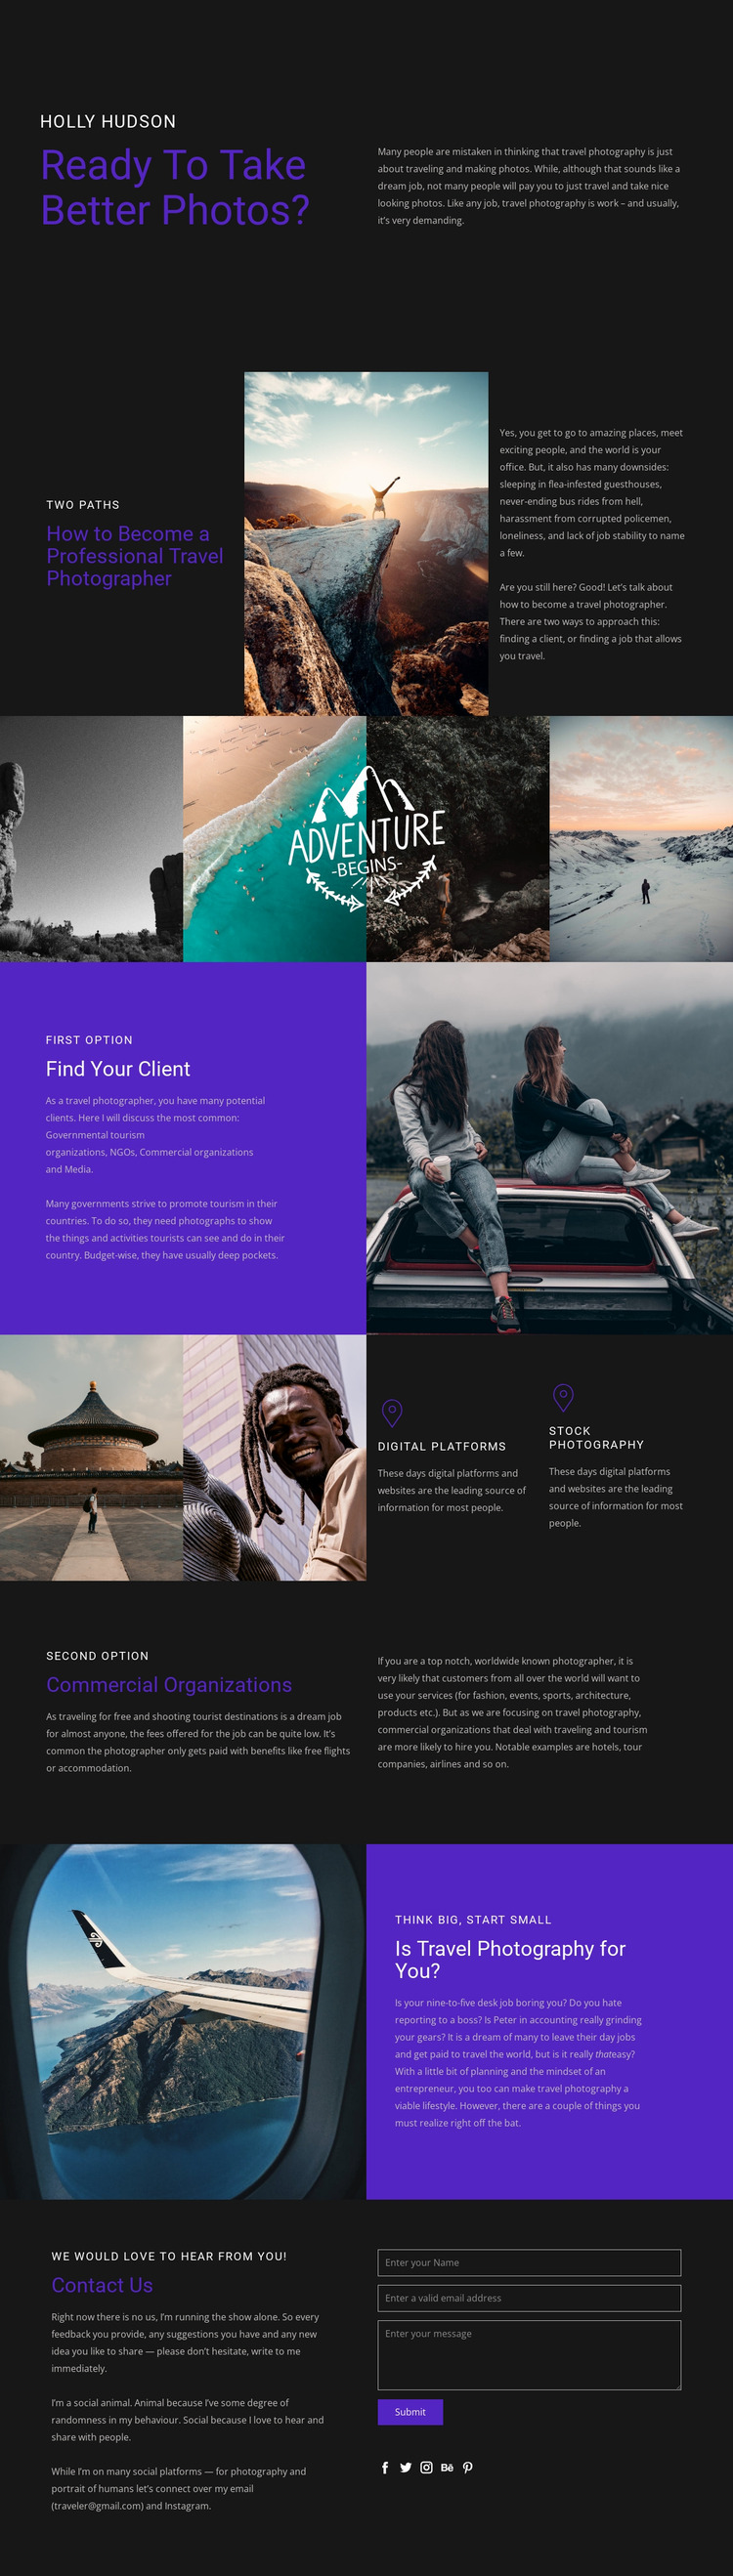 Travel and photography Website Mockup